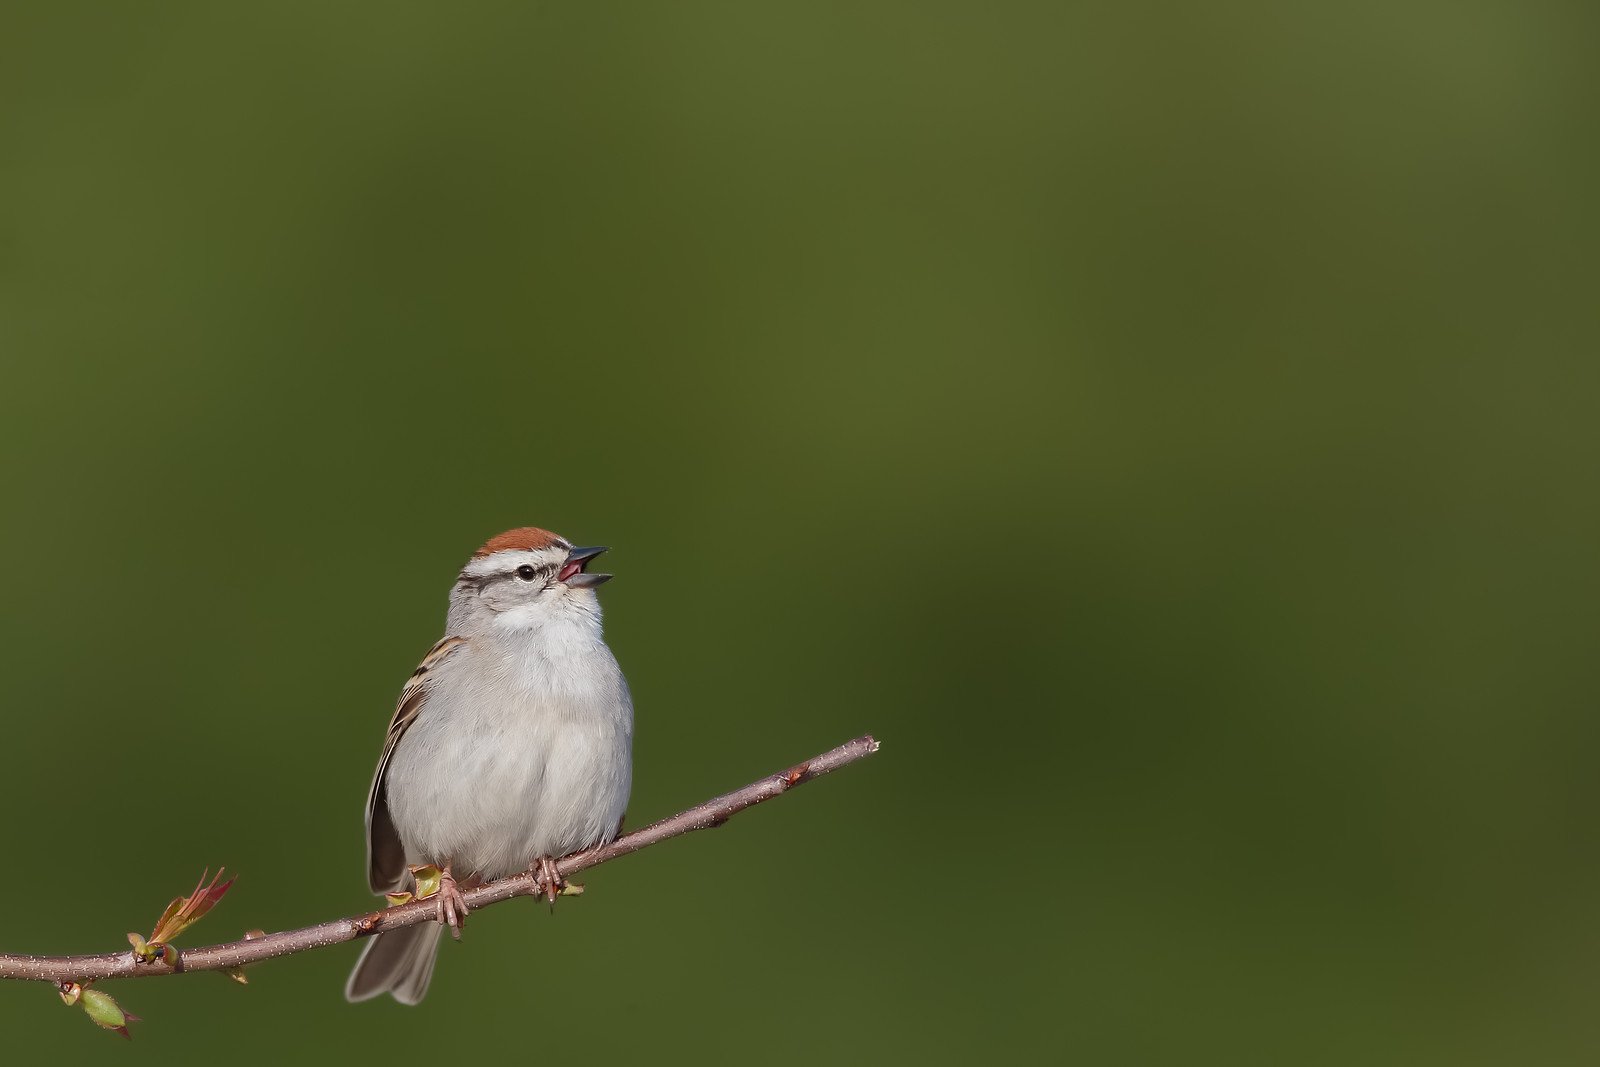 Chipping Sparrow - Grayling, MI, USA